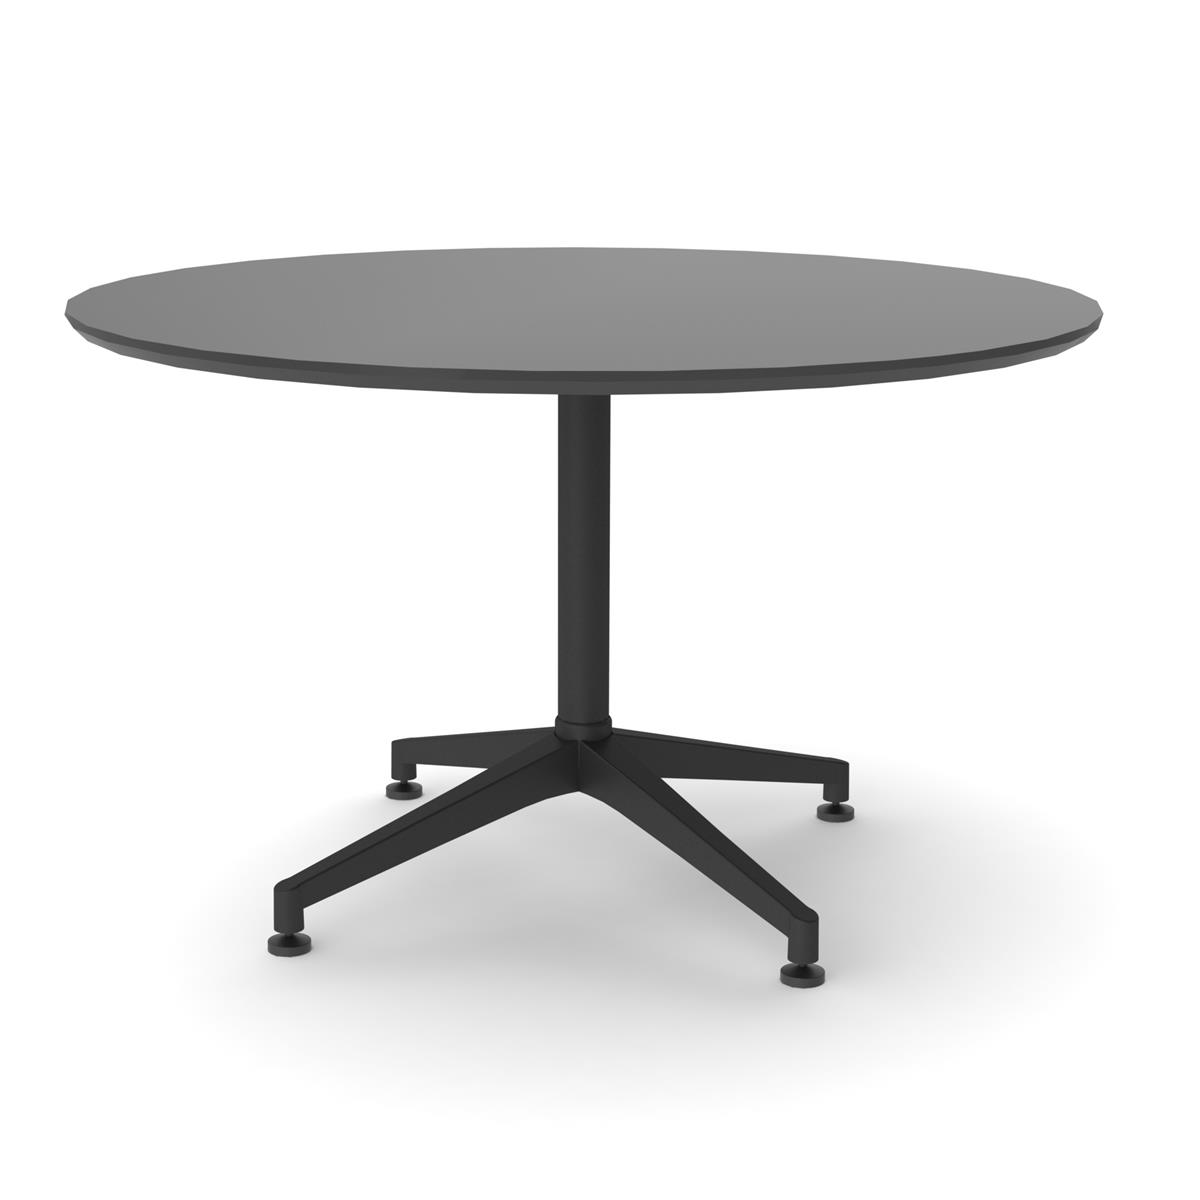 X1 Seamless Table Ø120 cm - sort linoleum & sort understell